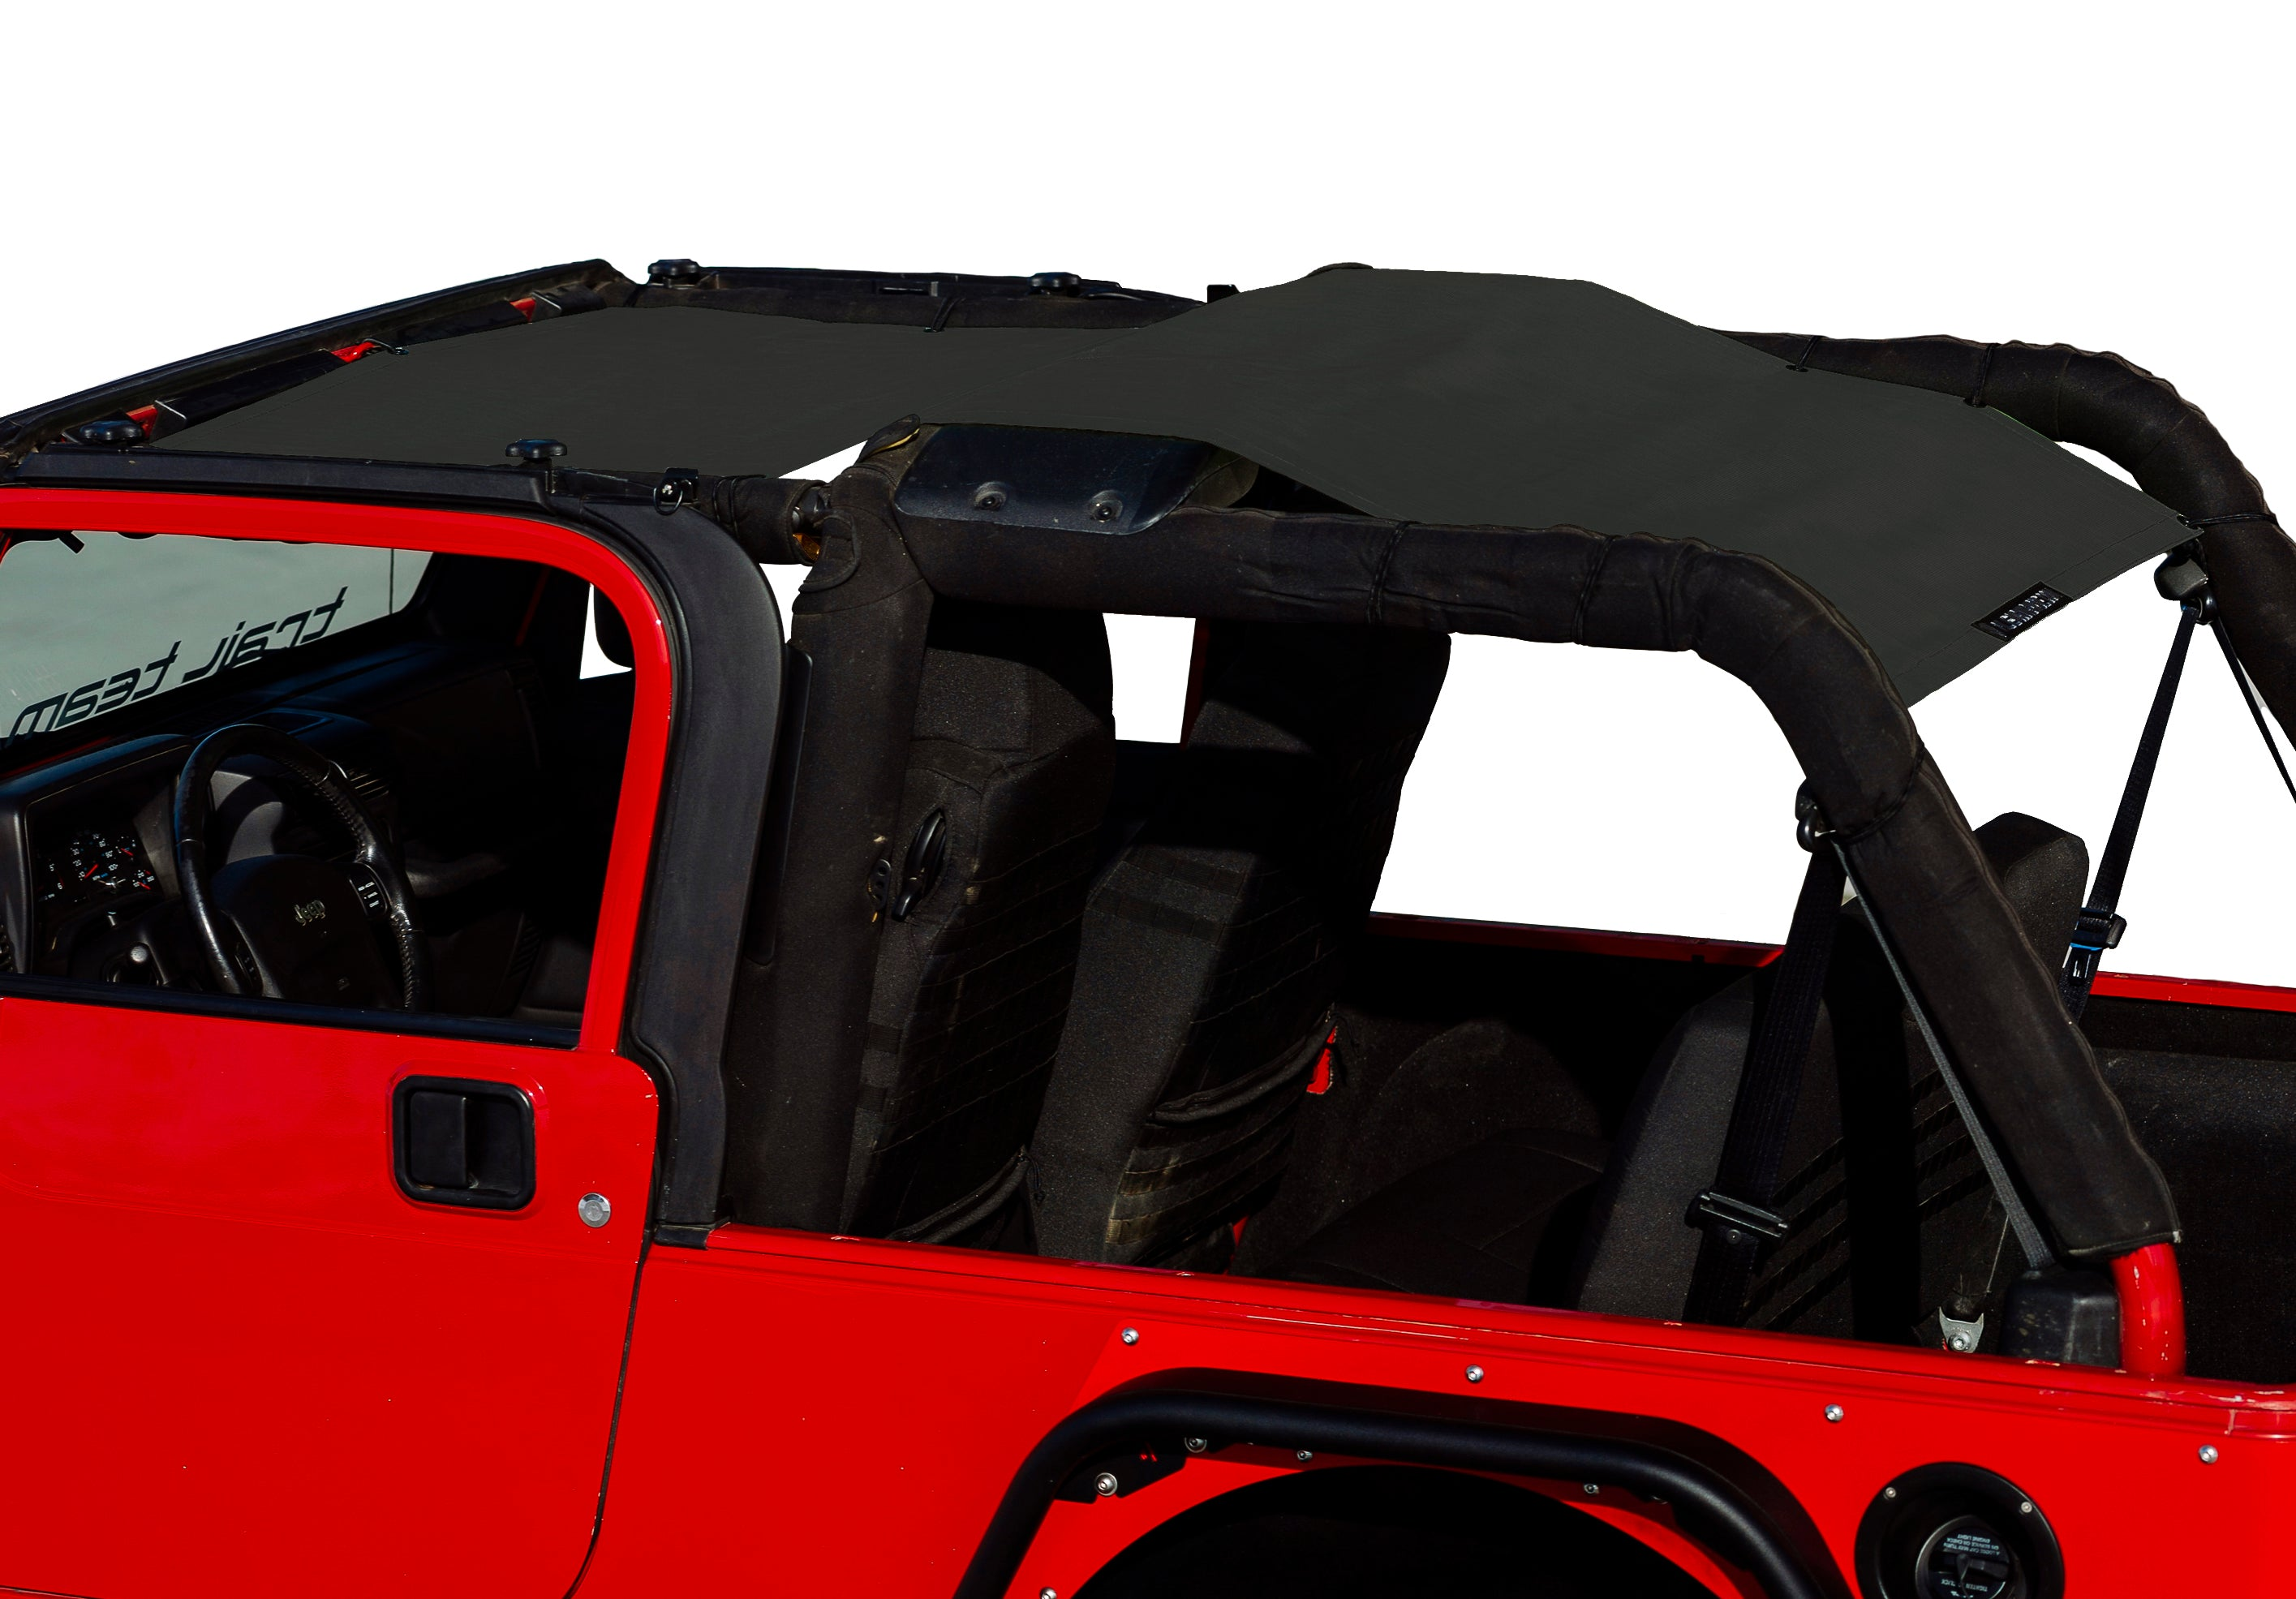 Alien Sunshade LJFB Jeep Wrangler LJ Sun Shade Full Mesh Top Cover